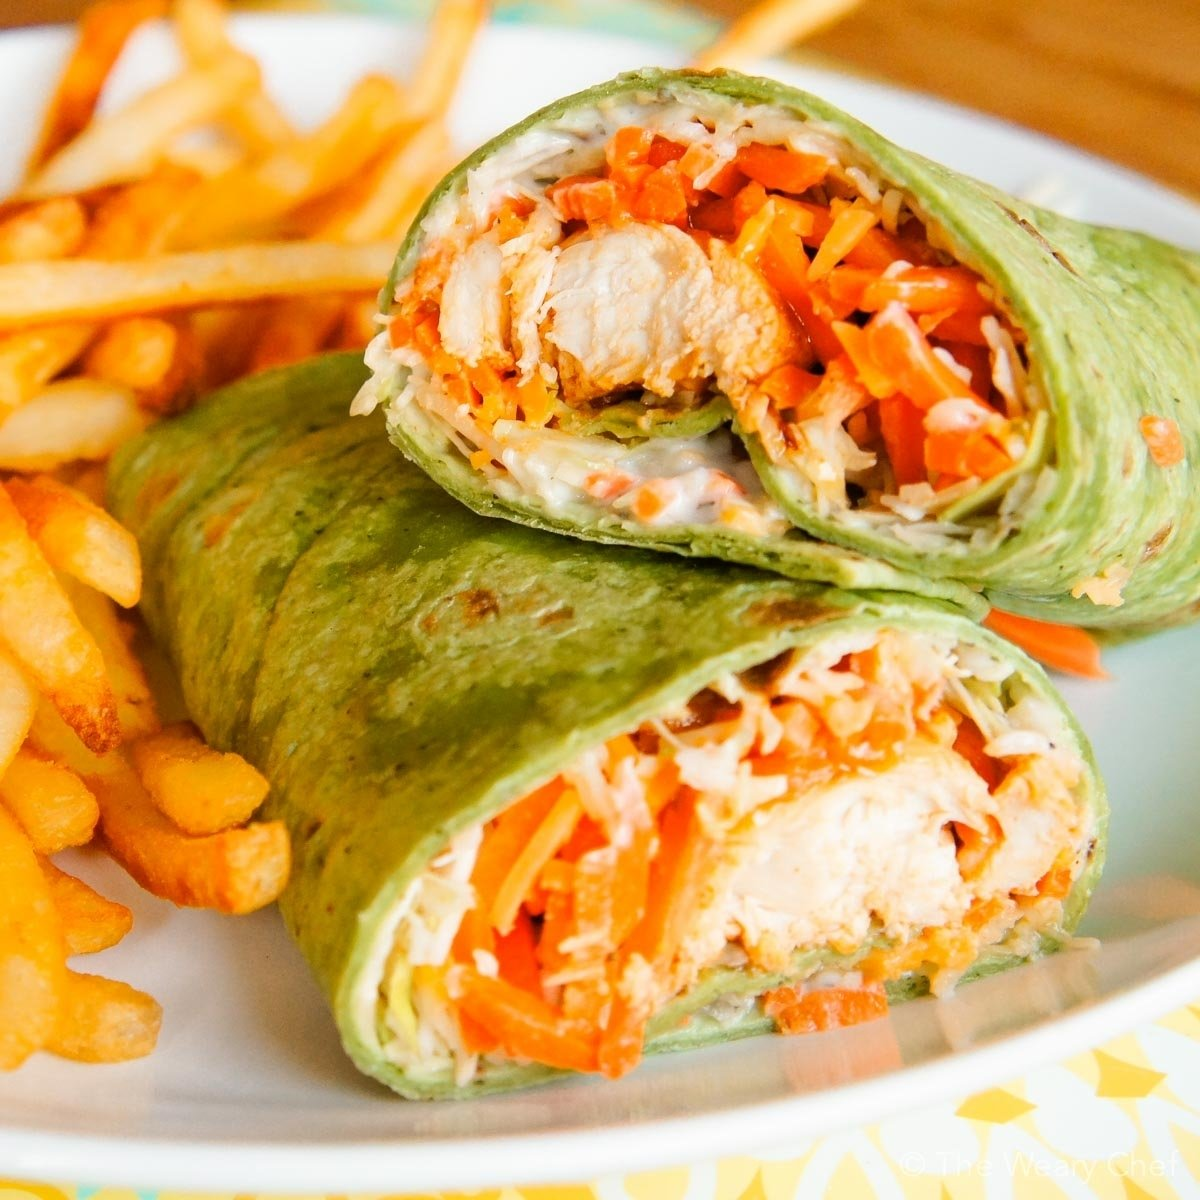 10 Beautiful Quick And Easy Meal Ideas buffalo chicken wraps a fun and tasty dinner idea the weary chef 2020